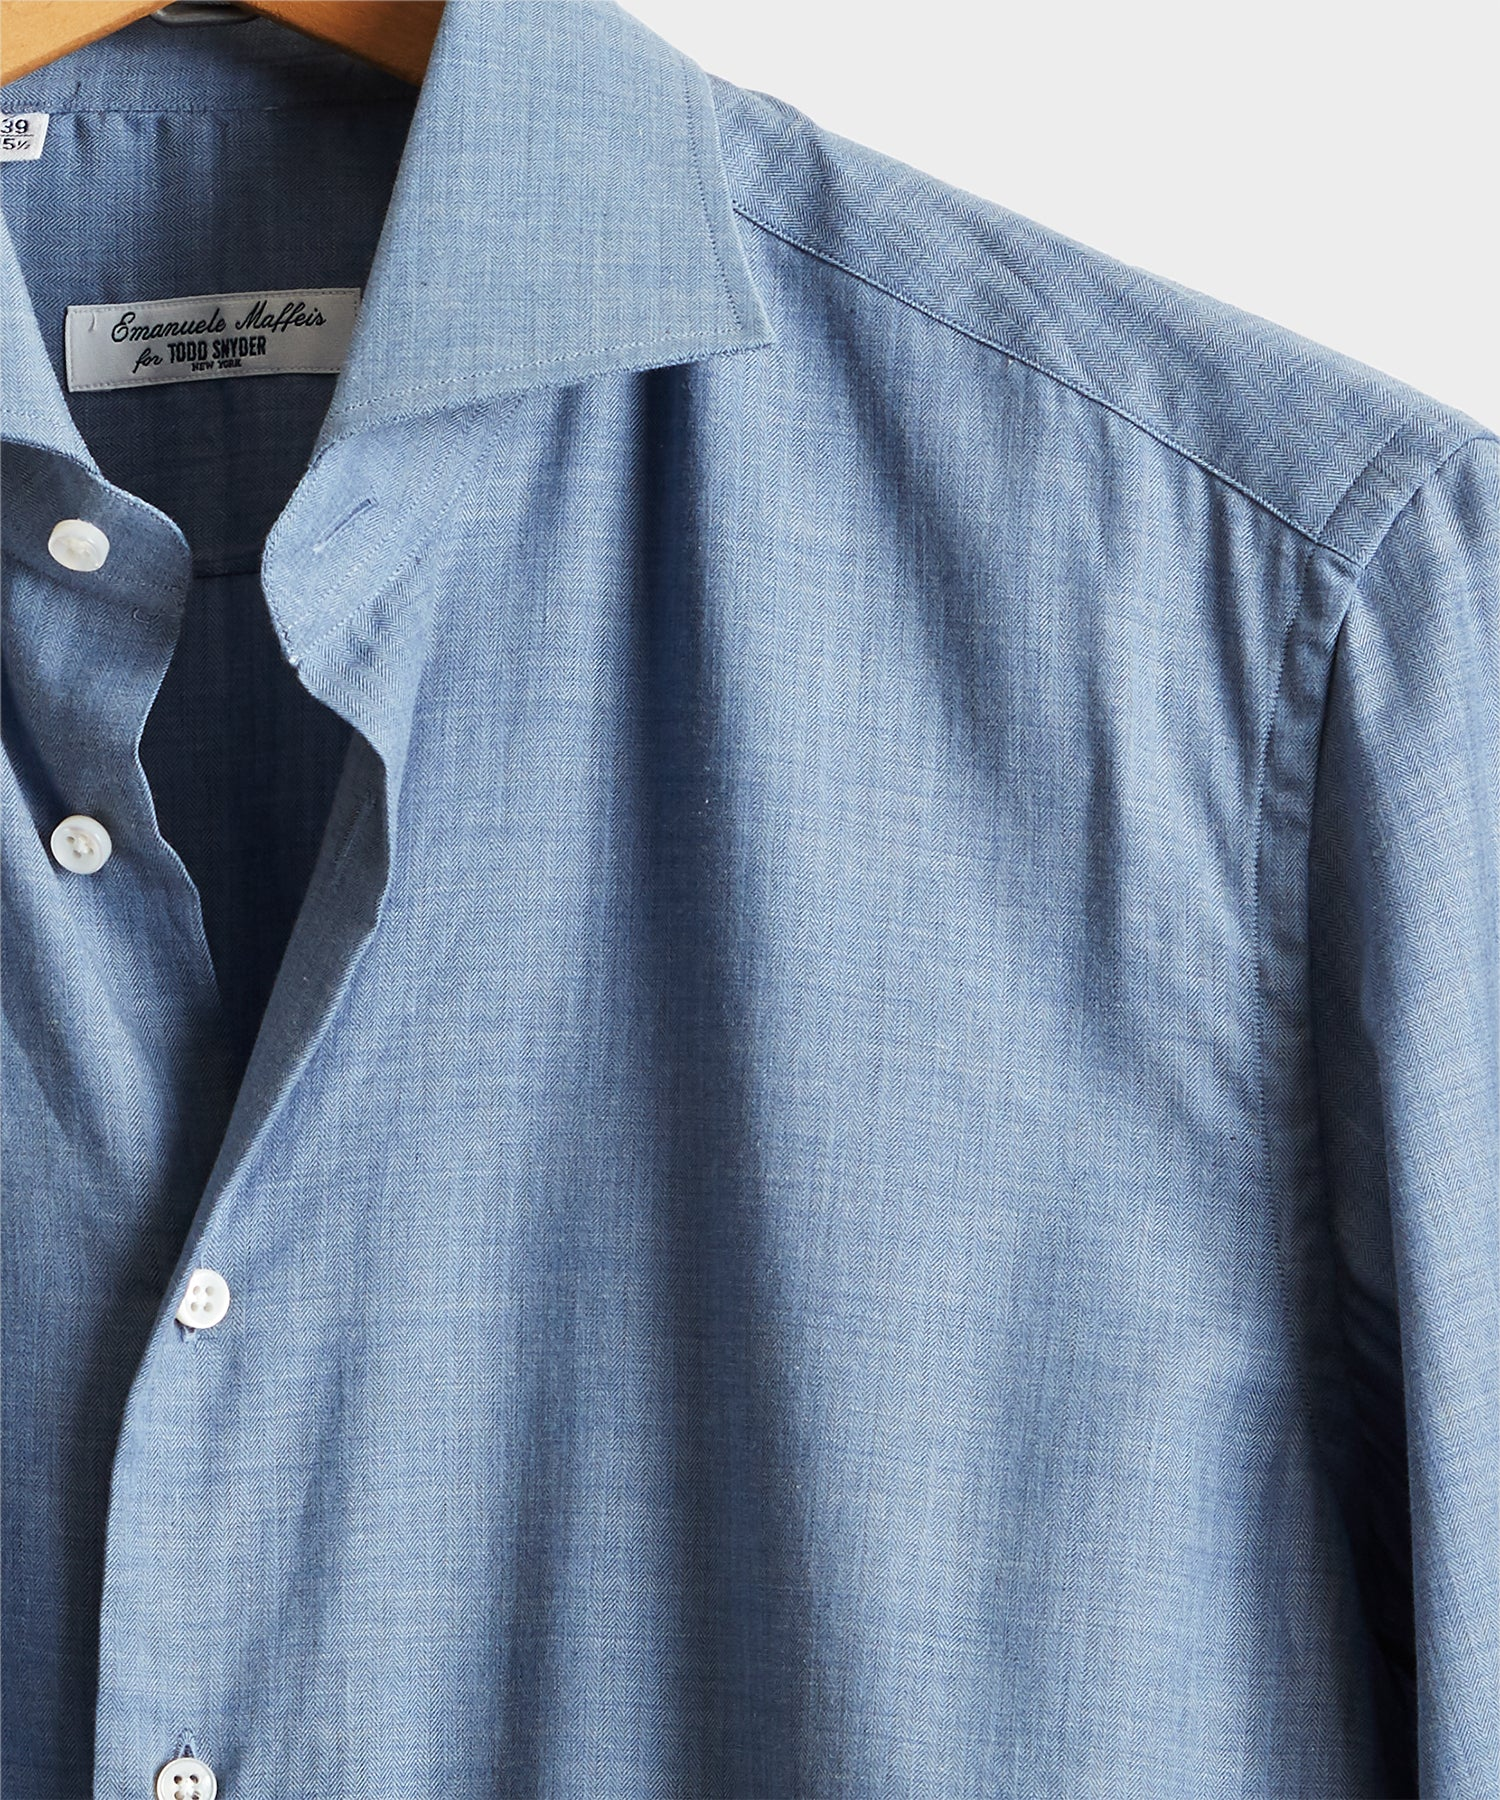 Camiceria E. Maffeis Solid Cotton Dress Shirt in Blue